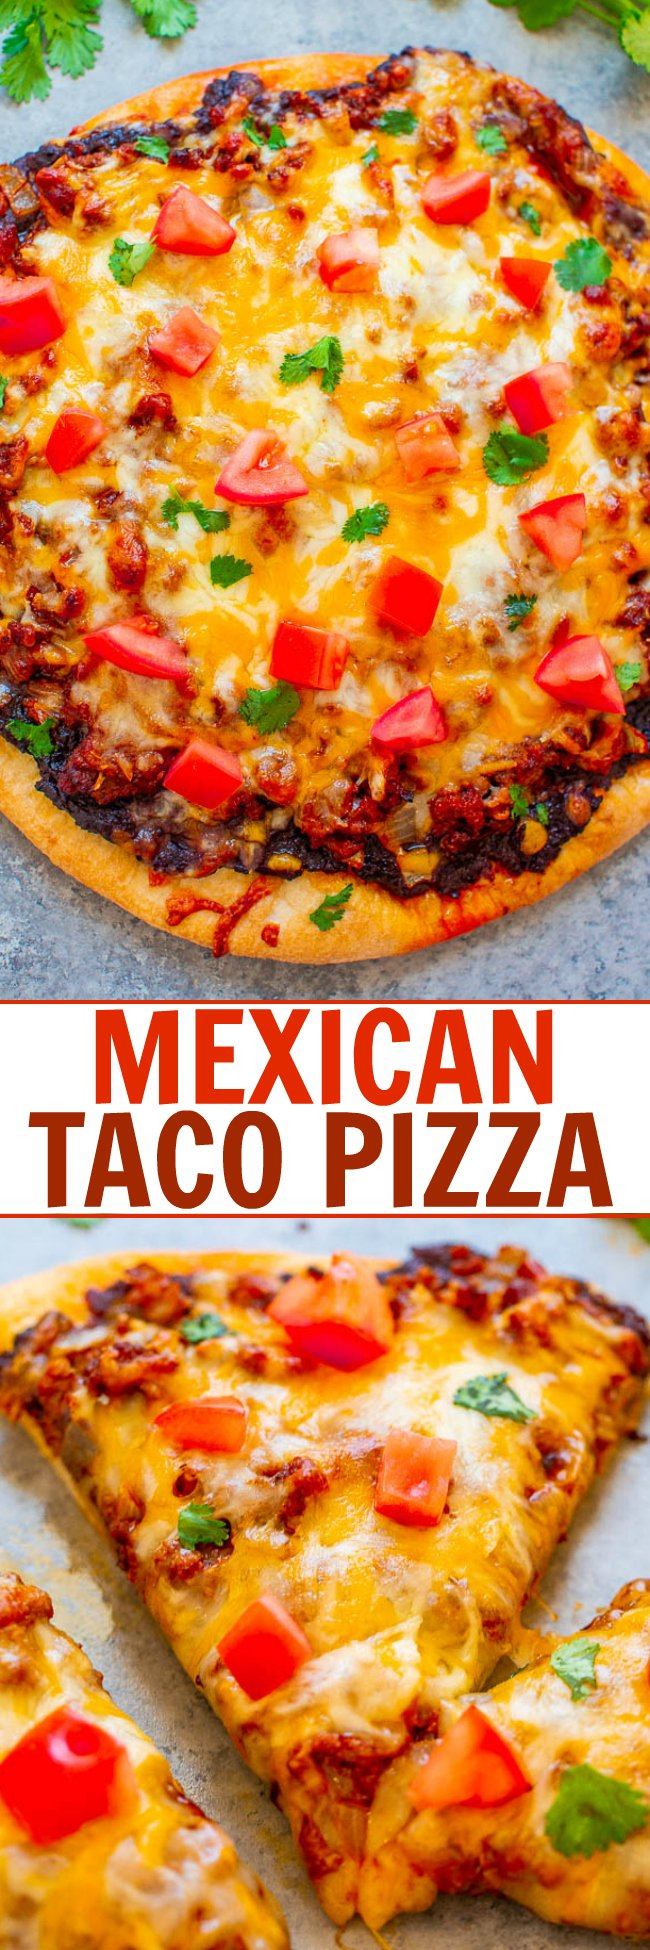 Mexican Taco Pizza - EASY, ready in 20 minutes, and like eating a taco in pizza form!! Taco-seasoned ground beef on top of refried beans with melted cheese and your favorite taco fixings!!